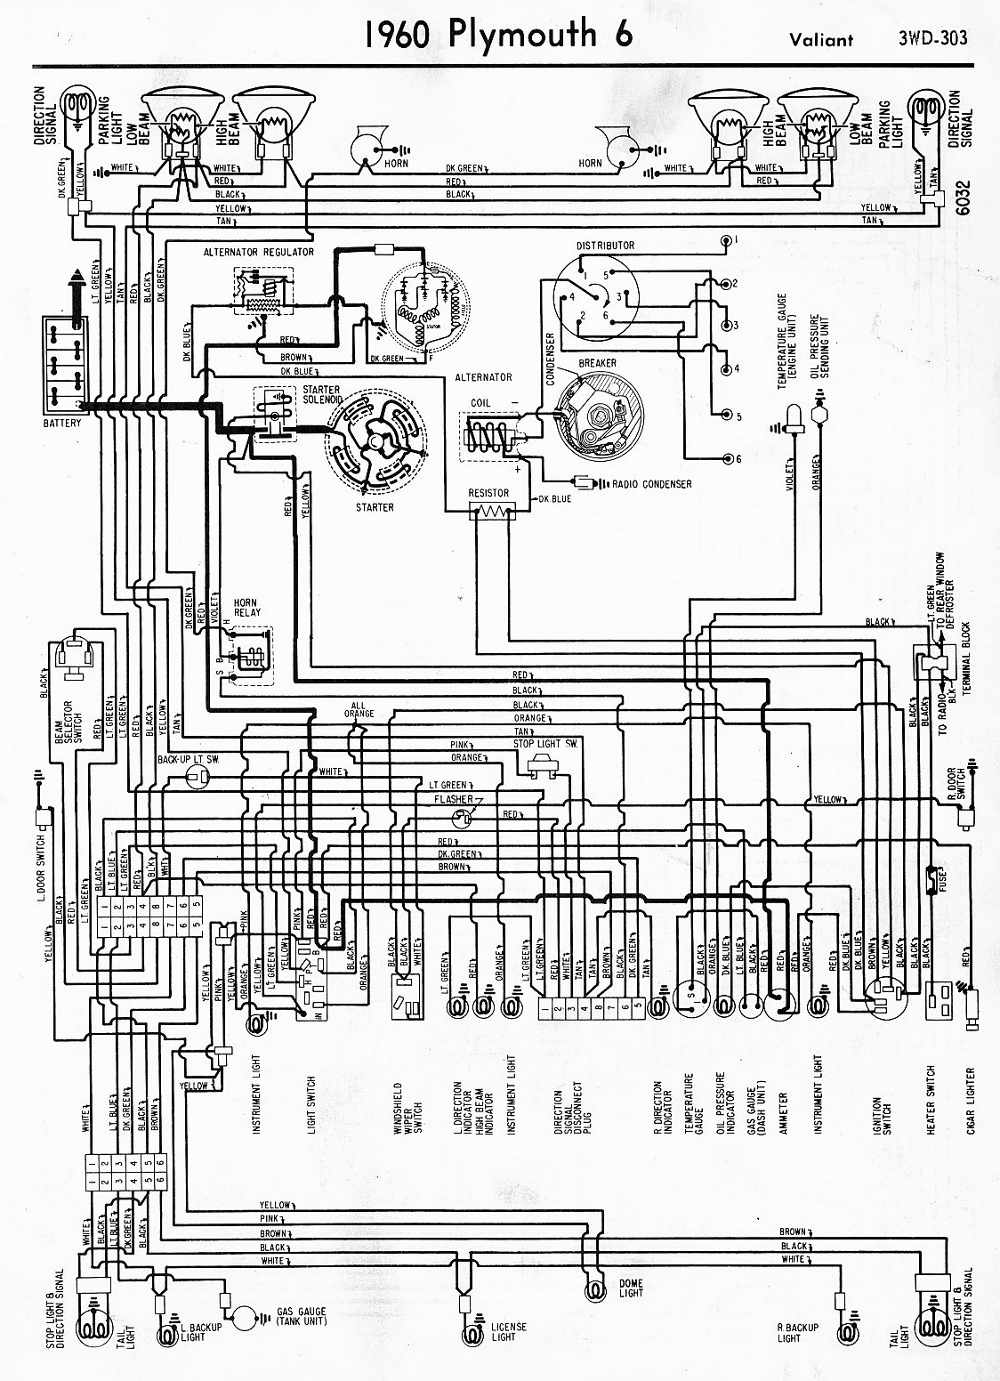 wiring-diagrams-of-1960-plymouth-6-valiant  Plymouth Valiant Wiring Diagram on 1965 mustang wiring diagram, 1957 plymouth wiring diagram, 1955 plymouth wiring diagram, 1970 plymouth wiring diagram, 1947 plymouth wiring diagram, 1969 pontiac gto wiring diagram, 1965 plymouth wiring diagram, 1967 chevelle ss wiring diagram, 1972 plymouth wiring diagram, 1968 chevelle wiring diagram, 1974 dodge wiring diagram, 1937 plymouth wiring diagram, 1950 plymouth wiring diagram, 1964 mustang wiring diagram, 1969 dodge wiring diagram, 1949 plymouth wiring diagram, 1968 plymouth wiring diagram, 1975 dodge truck wiring diagram, 1973 plymouth wiring diagram, 1966 mustang wiring diagram,